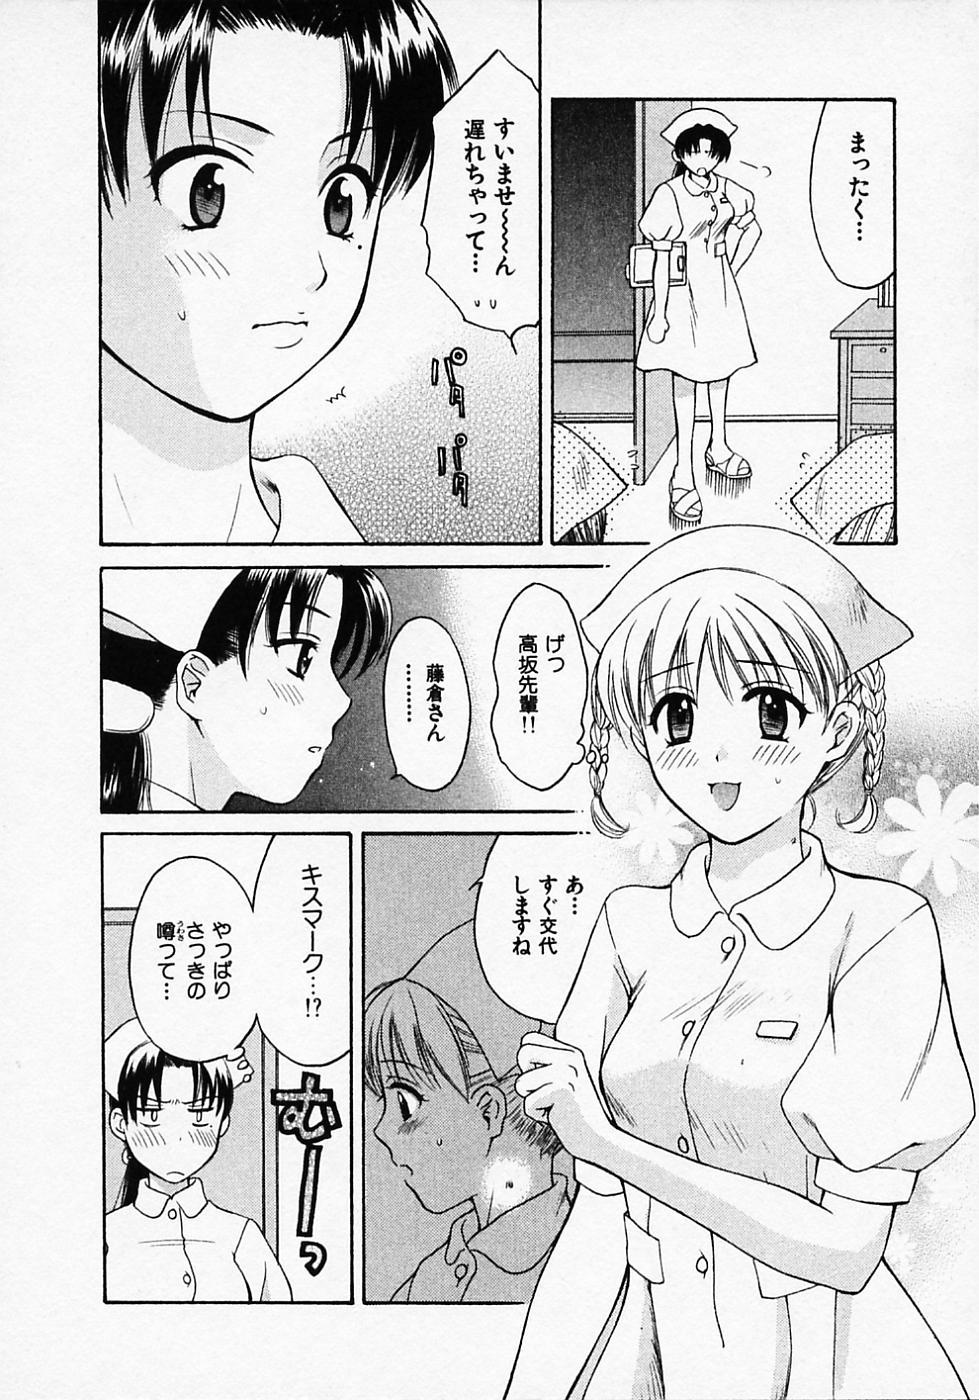 Maid In Japan 155